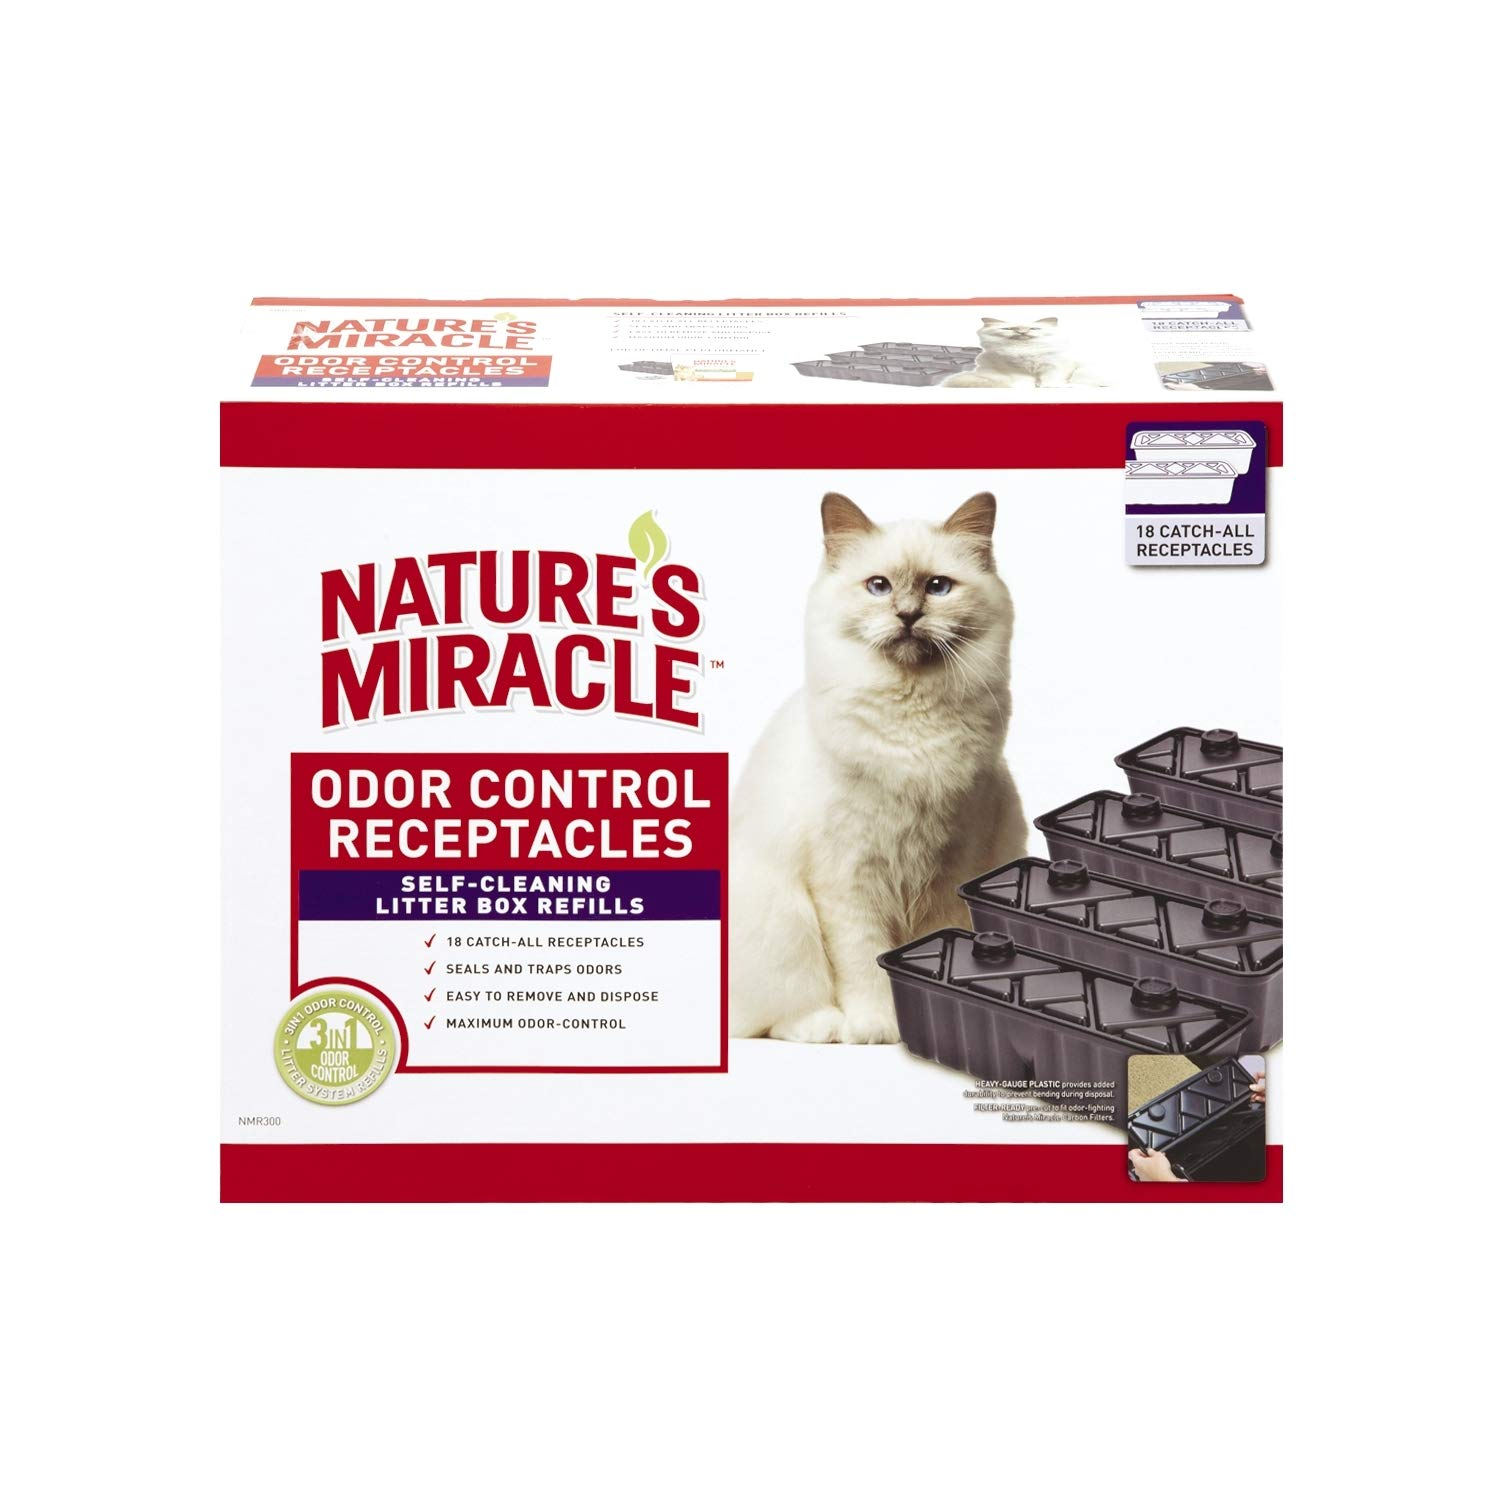 Nature's Miracle NMR300 Waste Receptacles (18 Pack)